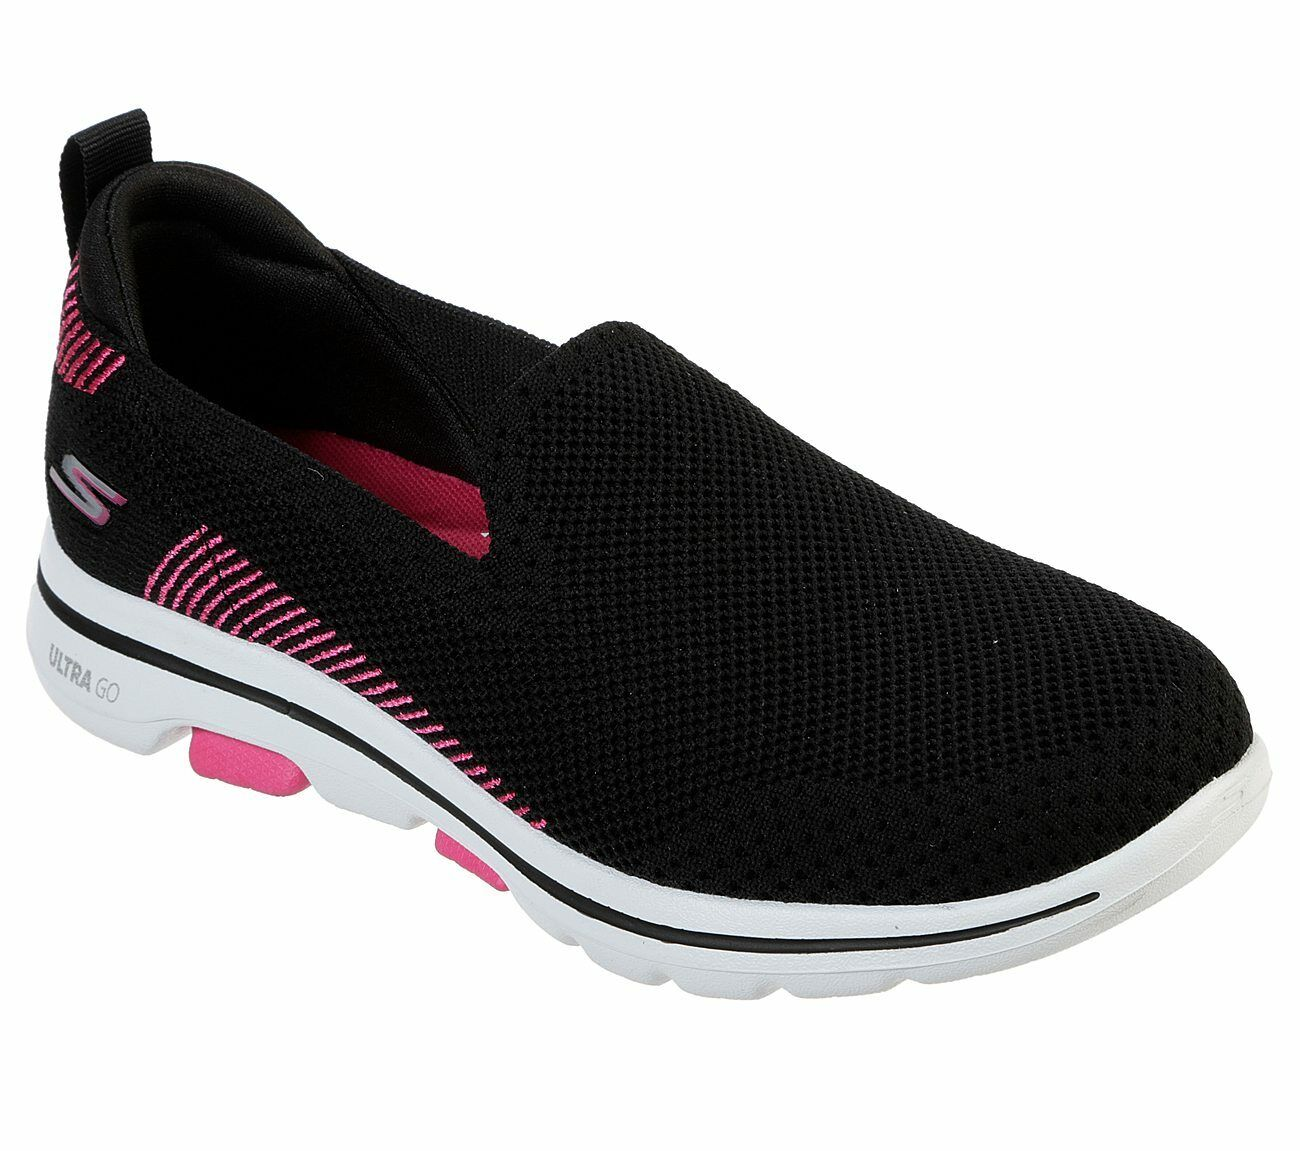 NEW $69 Womens Skechers Performance Go Walk 4 Knit shoes size 10